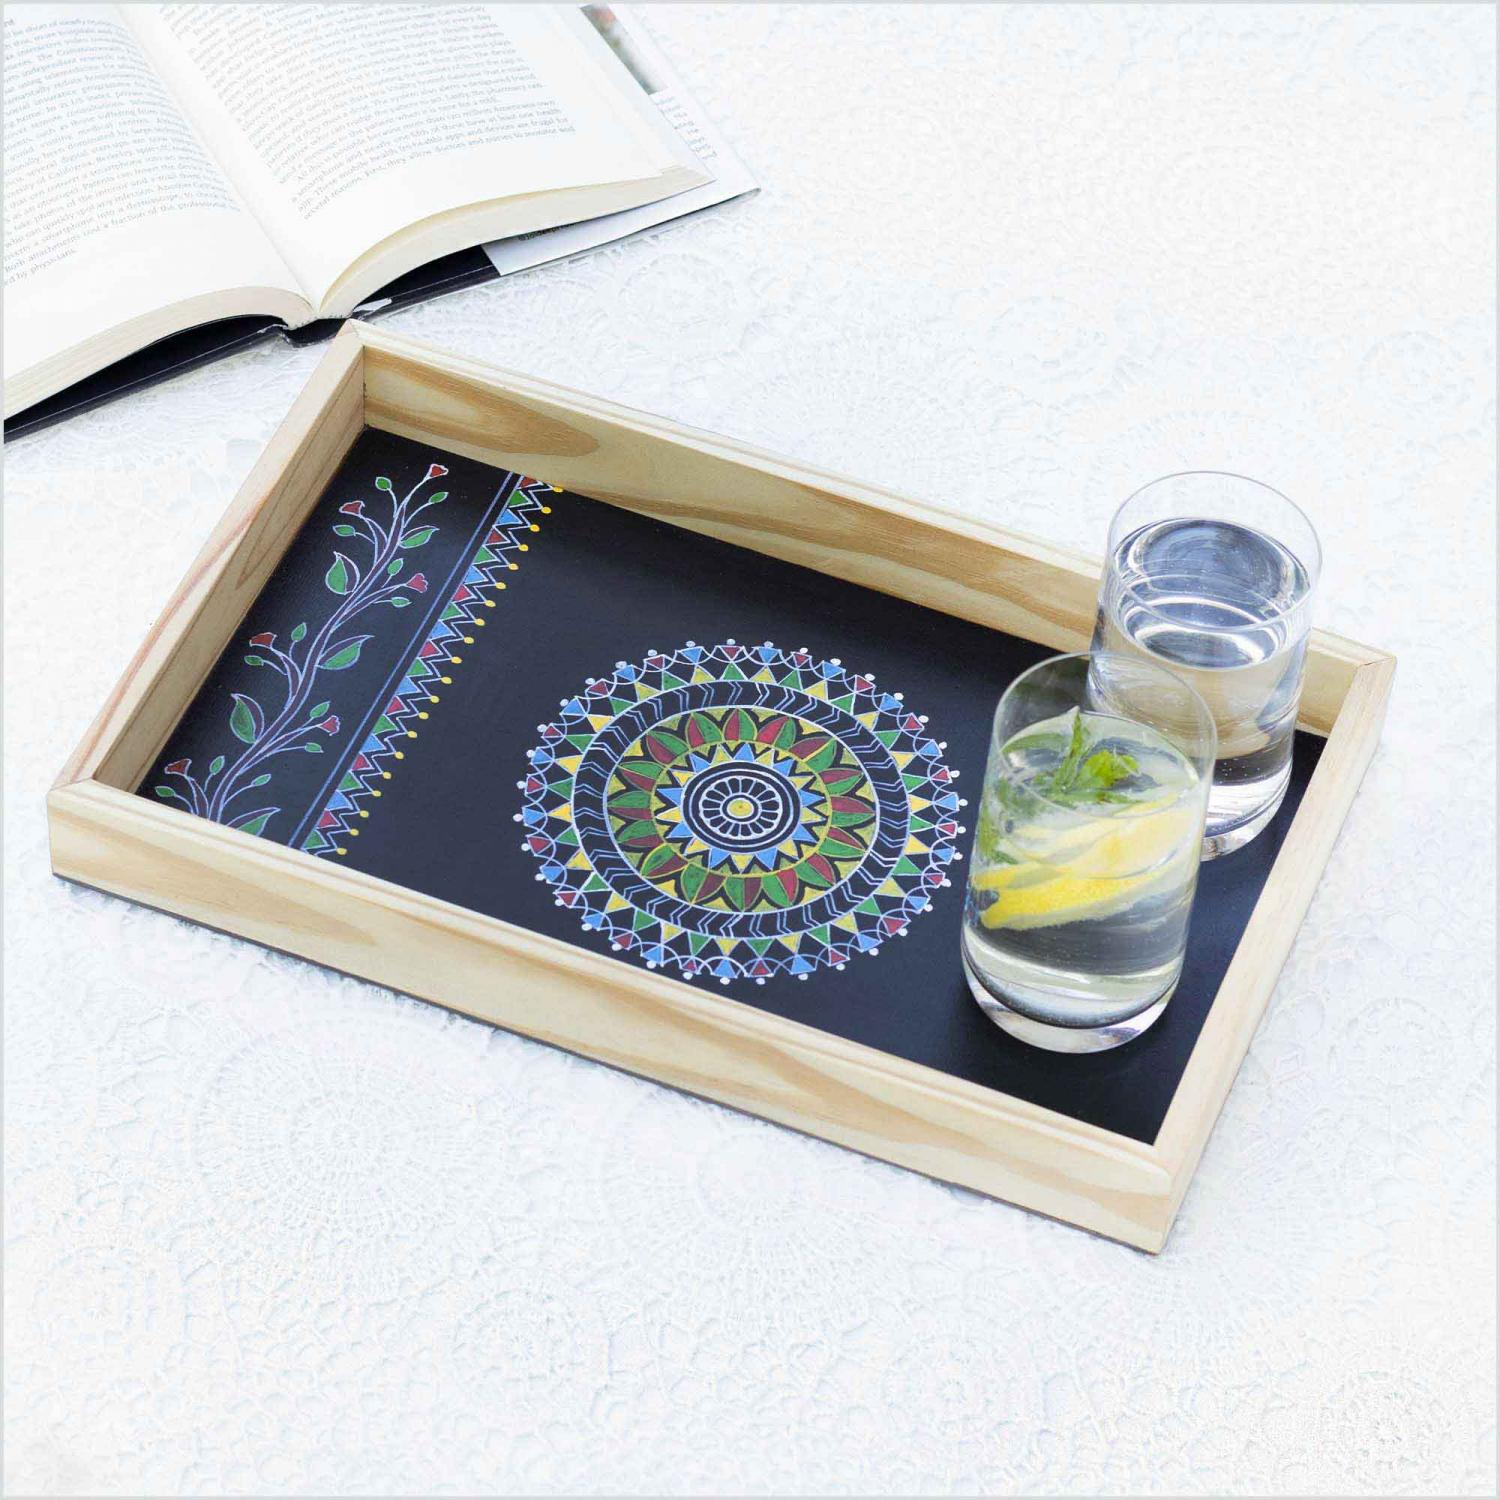 Black color Mandala design tray with the sun shaped in the center of tray kept on a white surface with the glass of water and lemonade in a tray and book kept beside it.